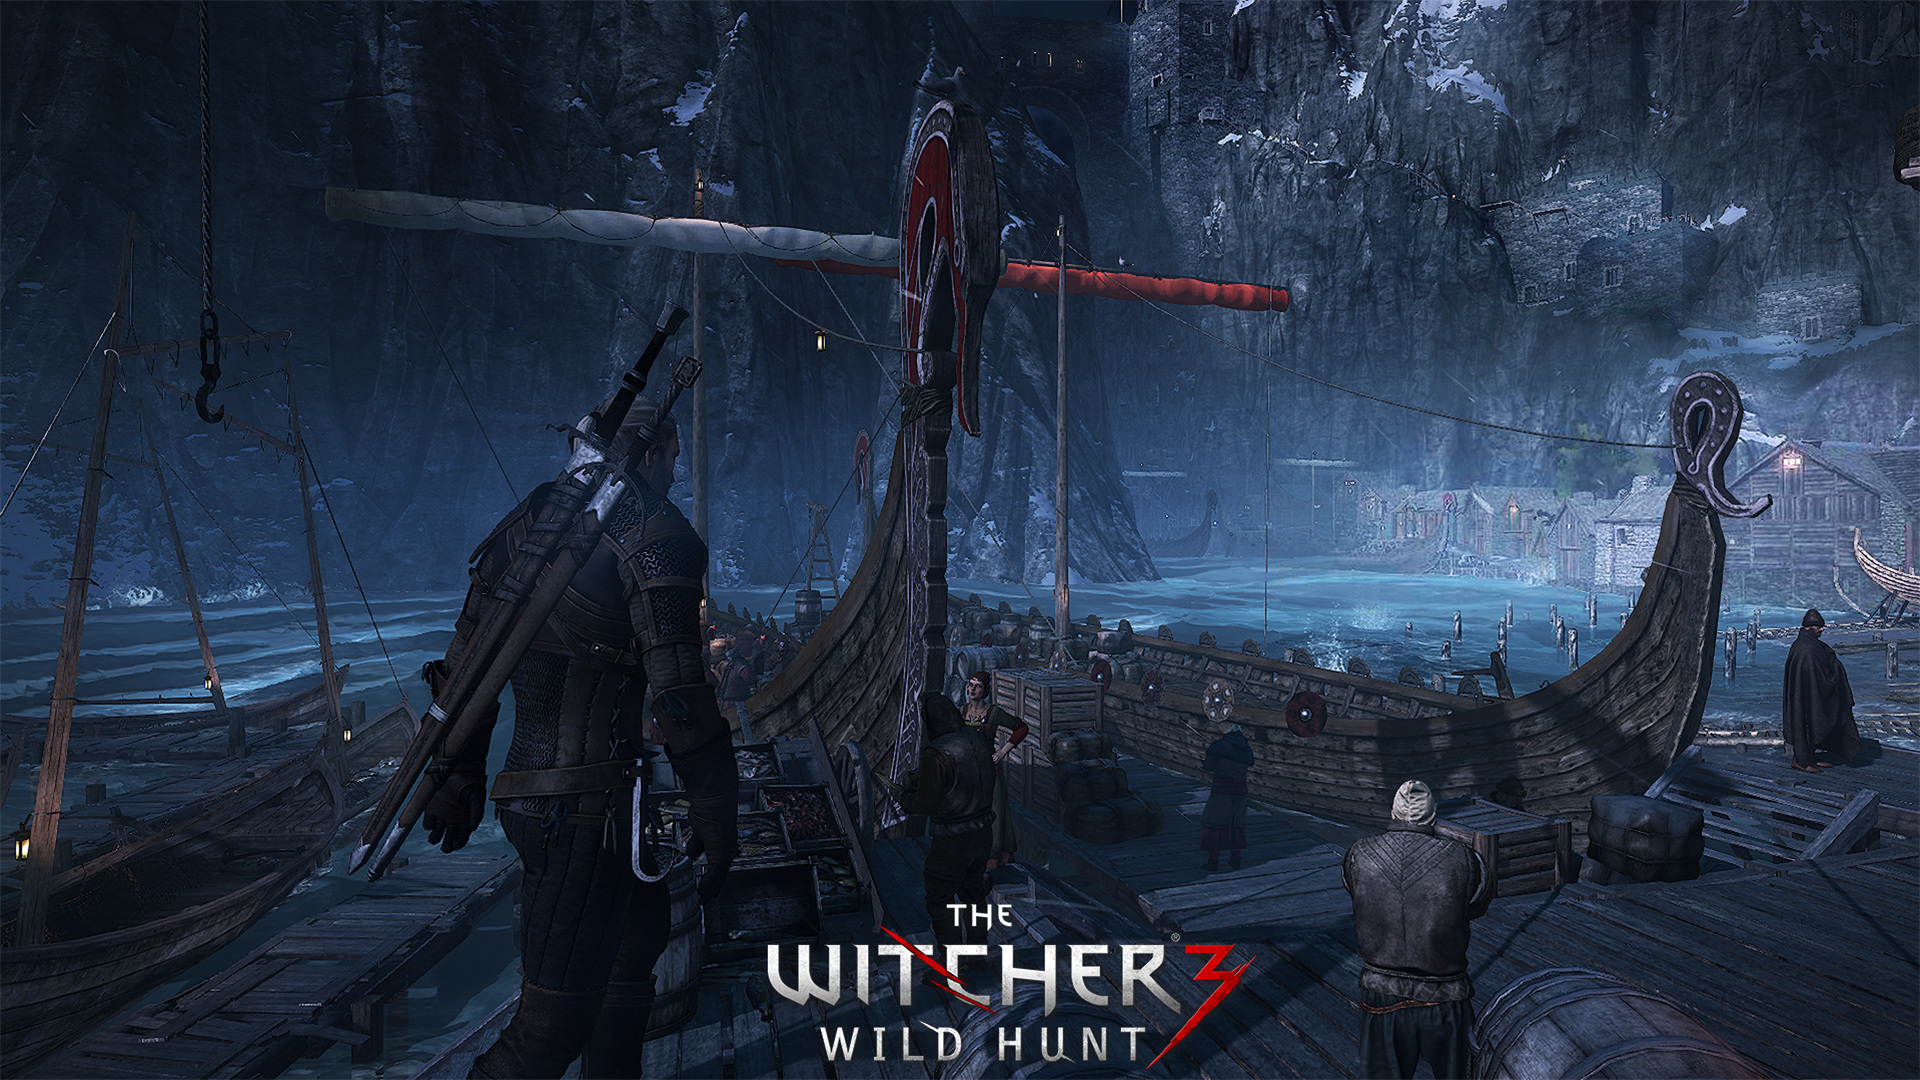 Epic Movie Hd Wallpapers The Witcher 3 Wild Hunt Wallpapers 9 Hd Wallpapers